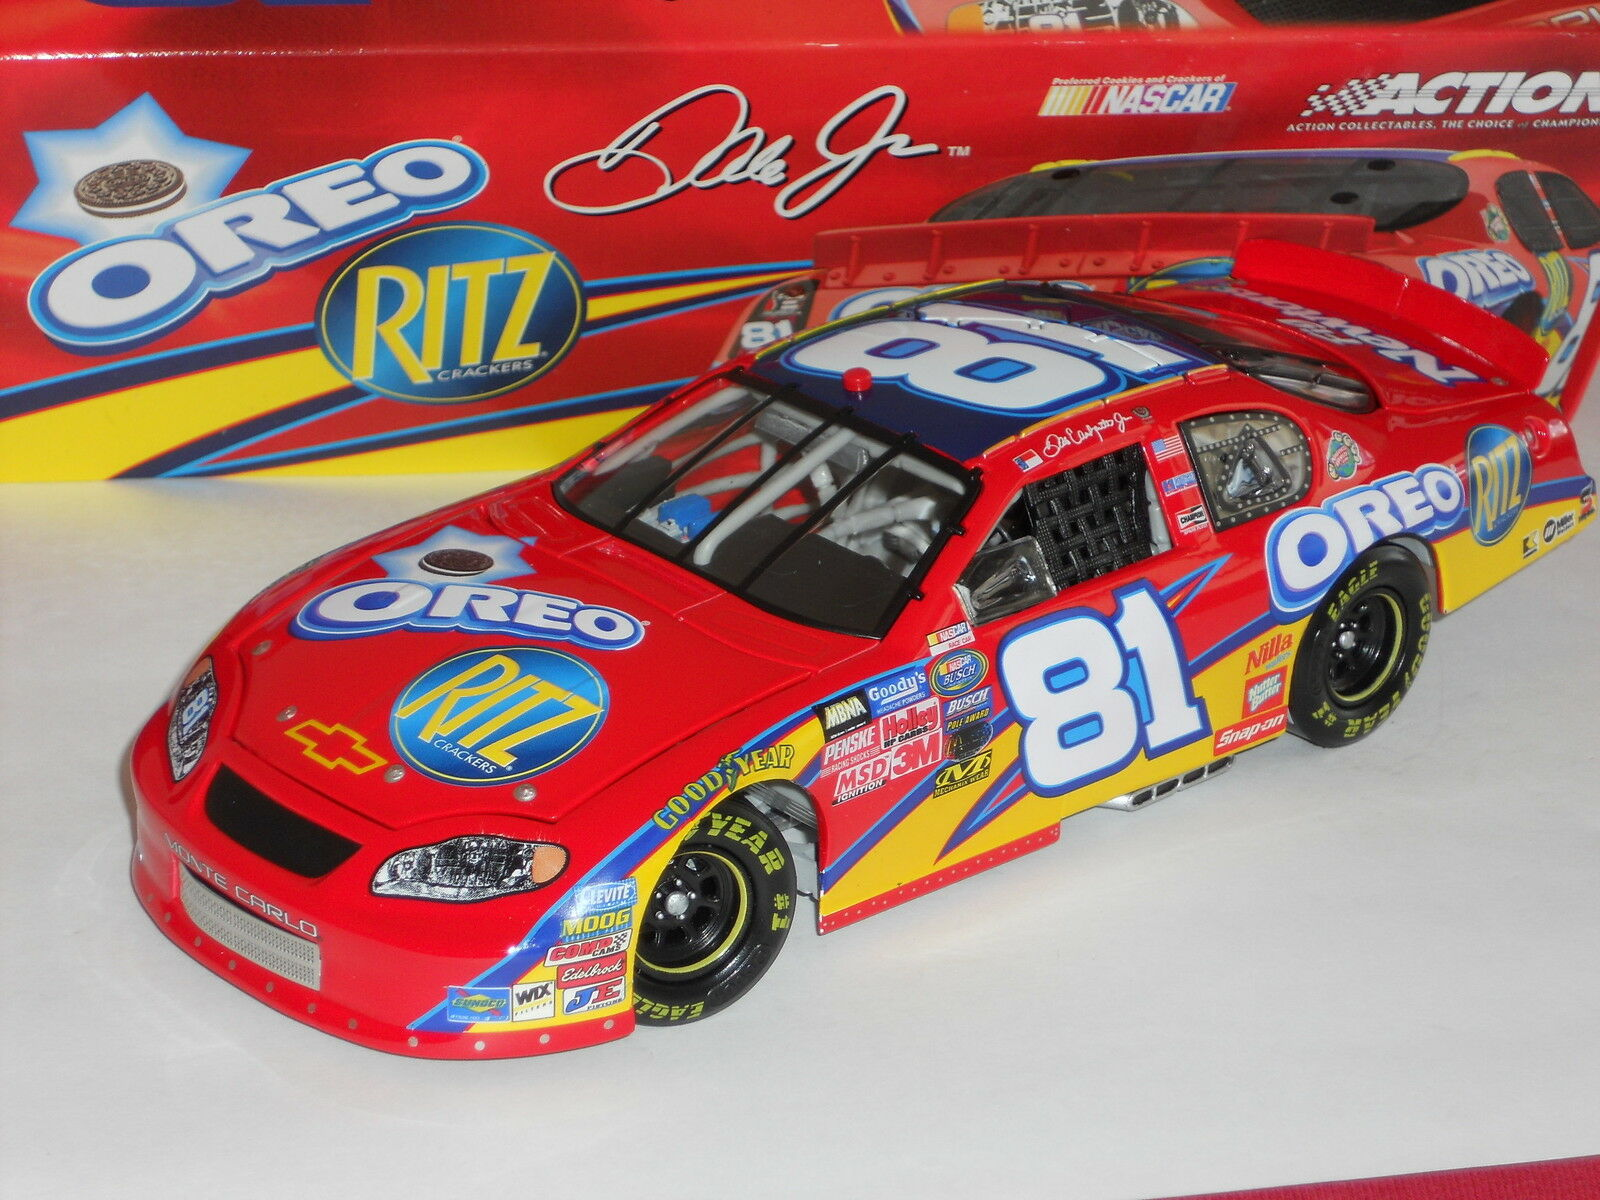 Dale Earnhardt Jr Action 2005   81 rosso RITZ   OREO 1   15,516